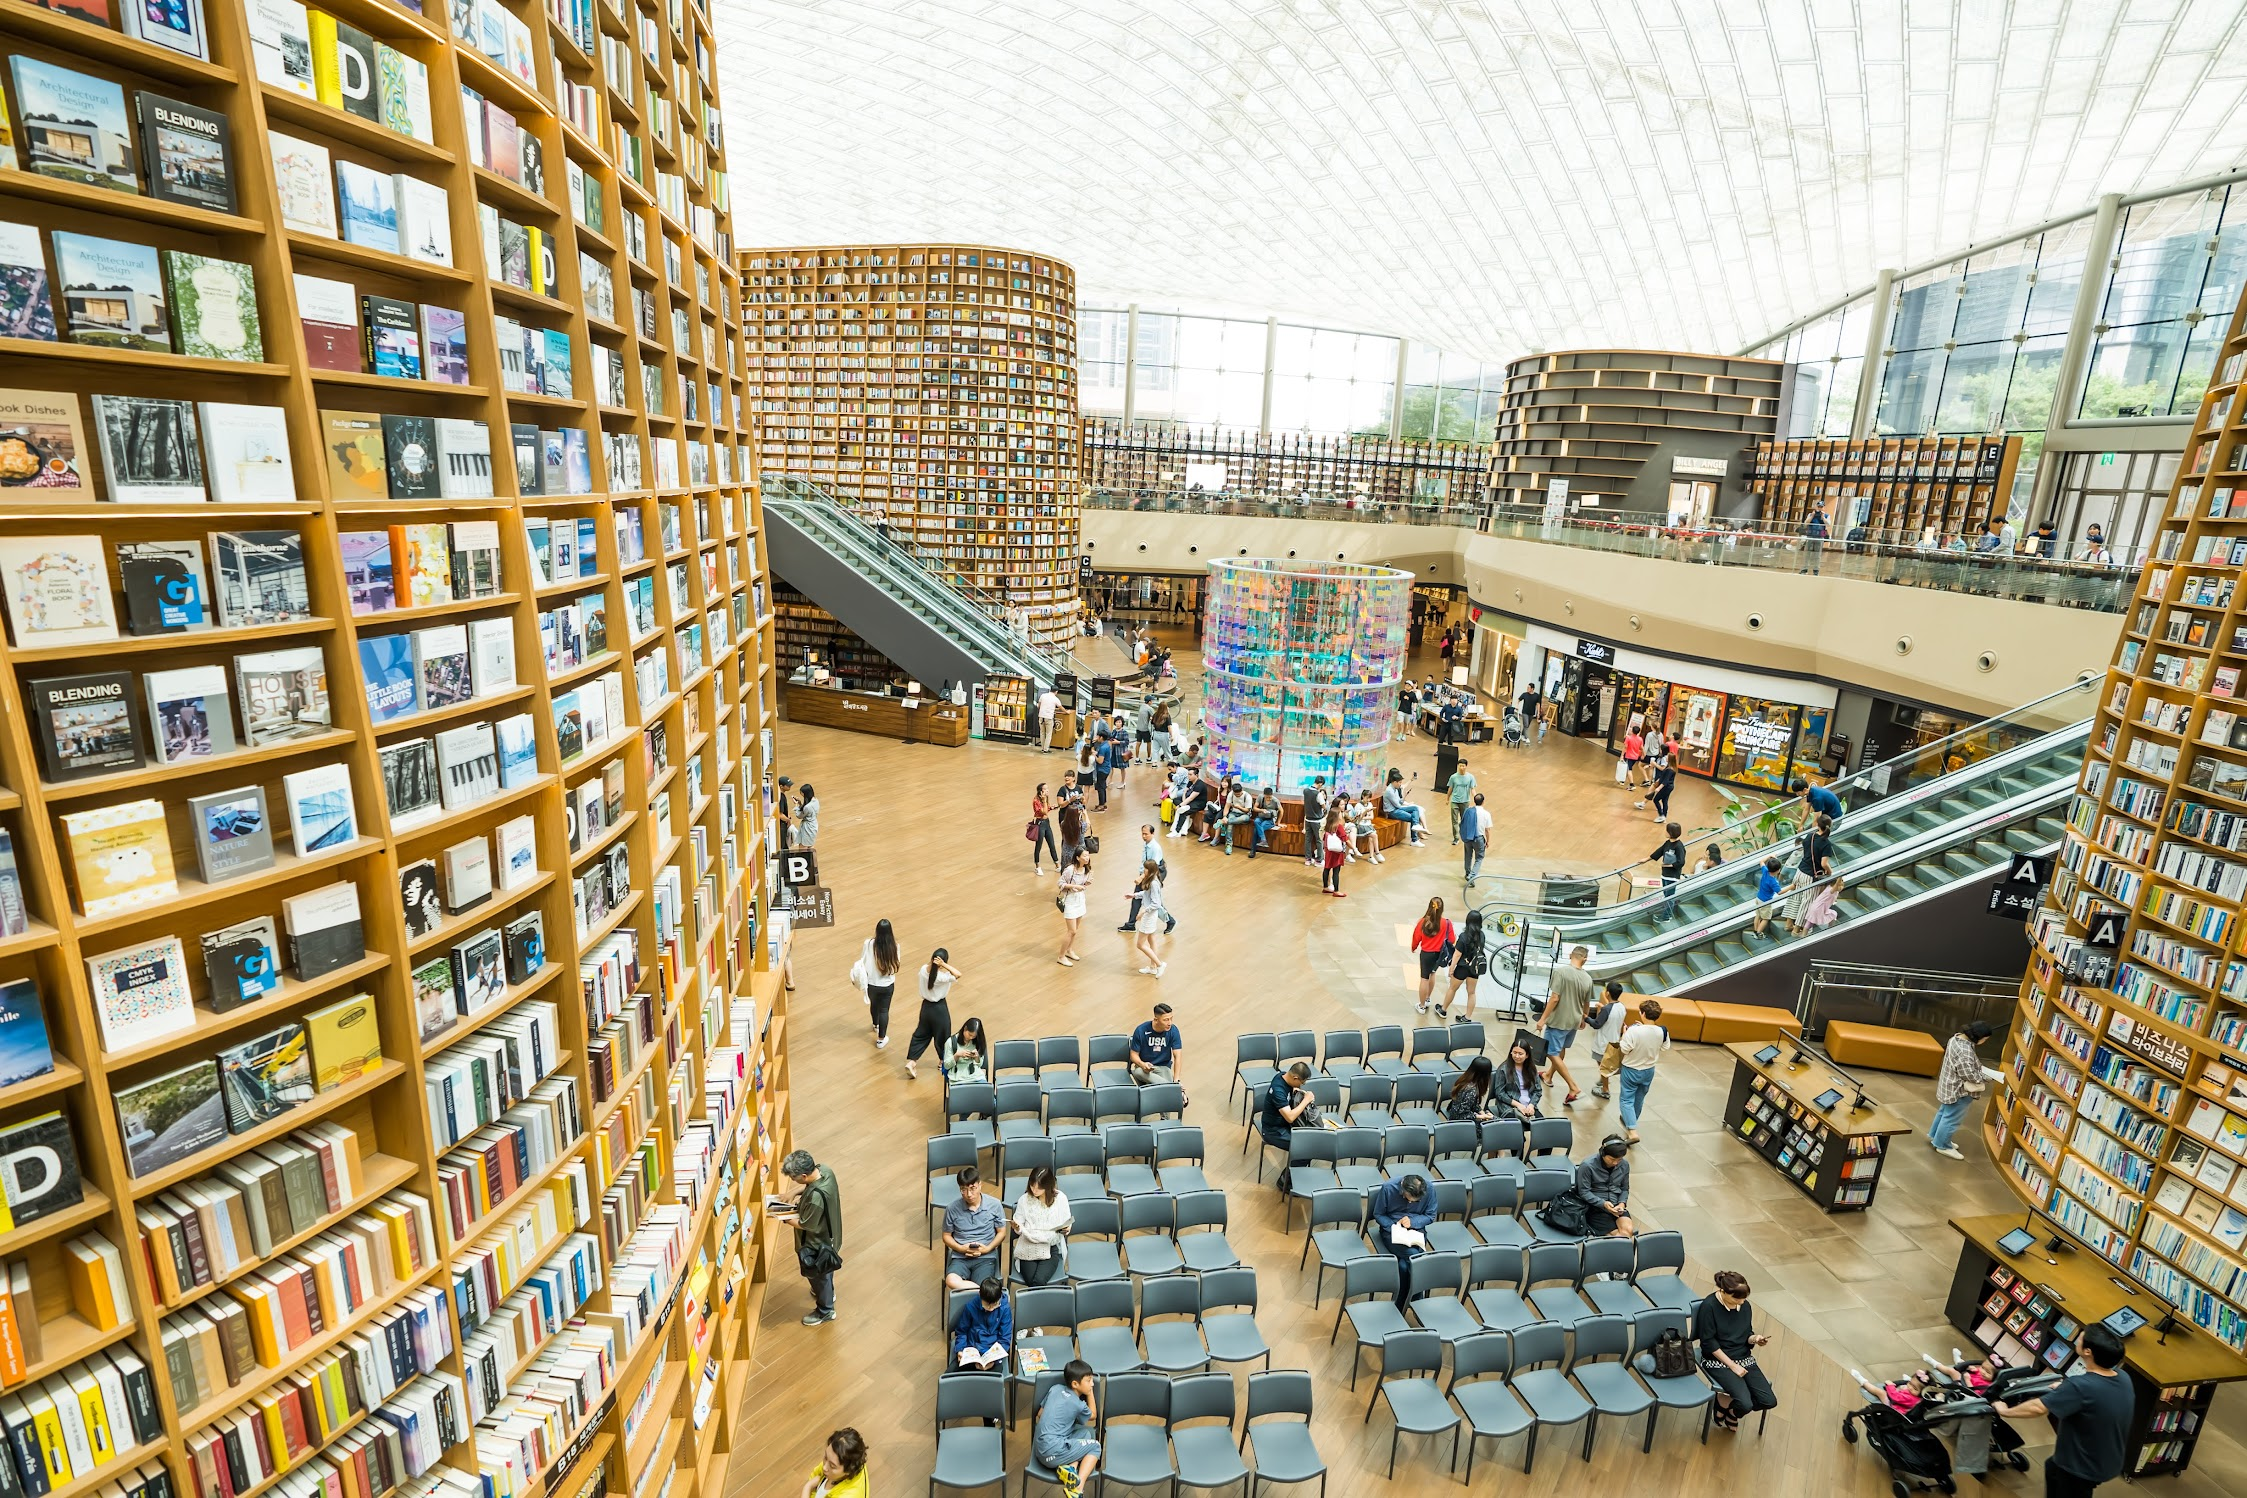 Starfield COEX Mall Library3